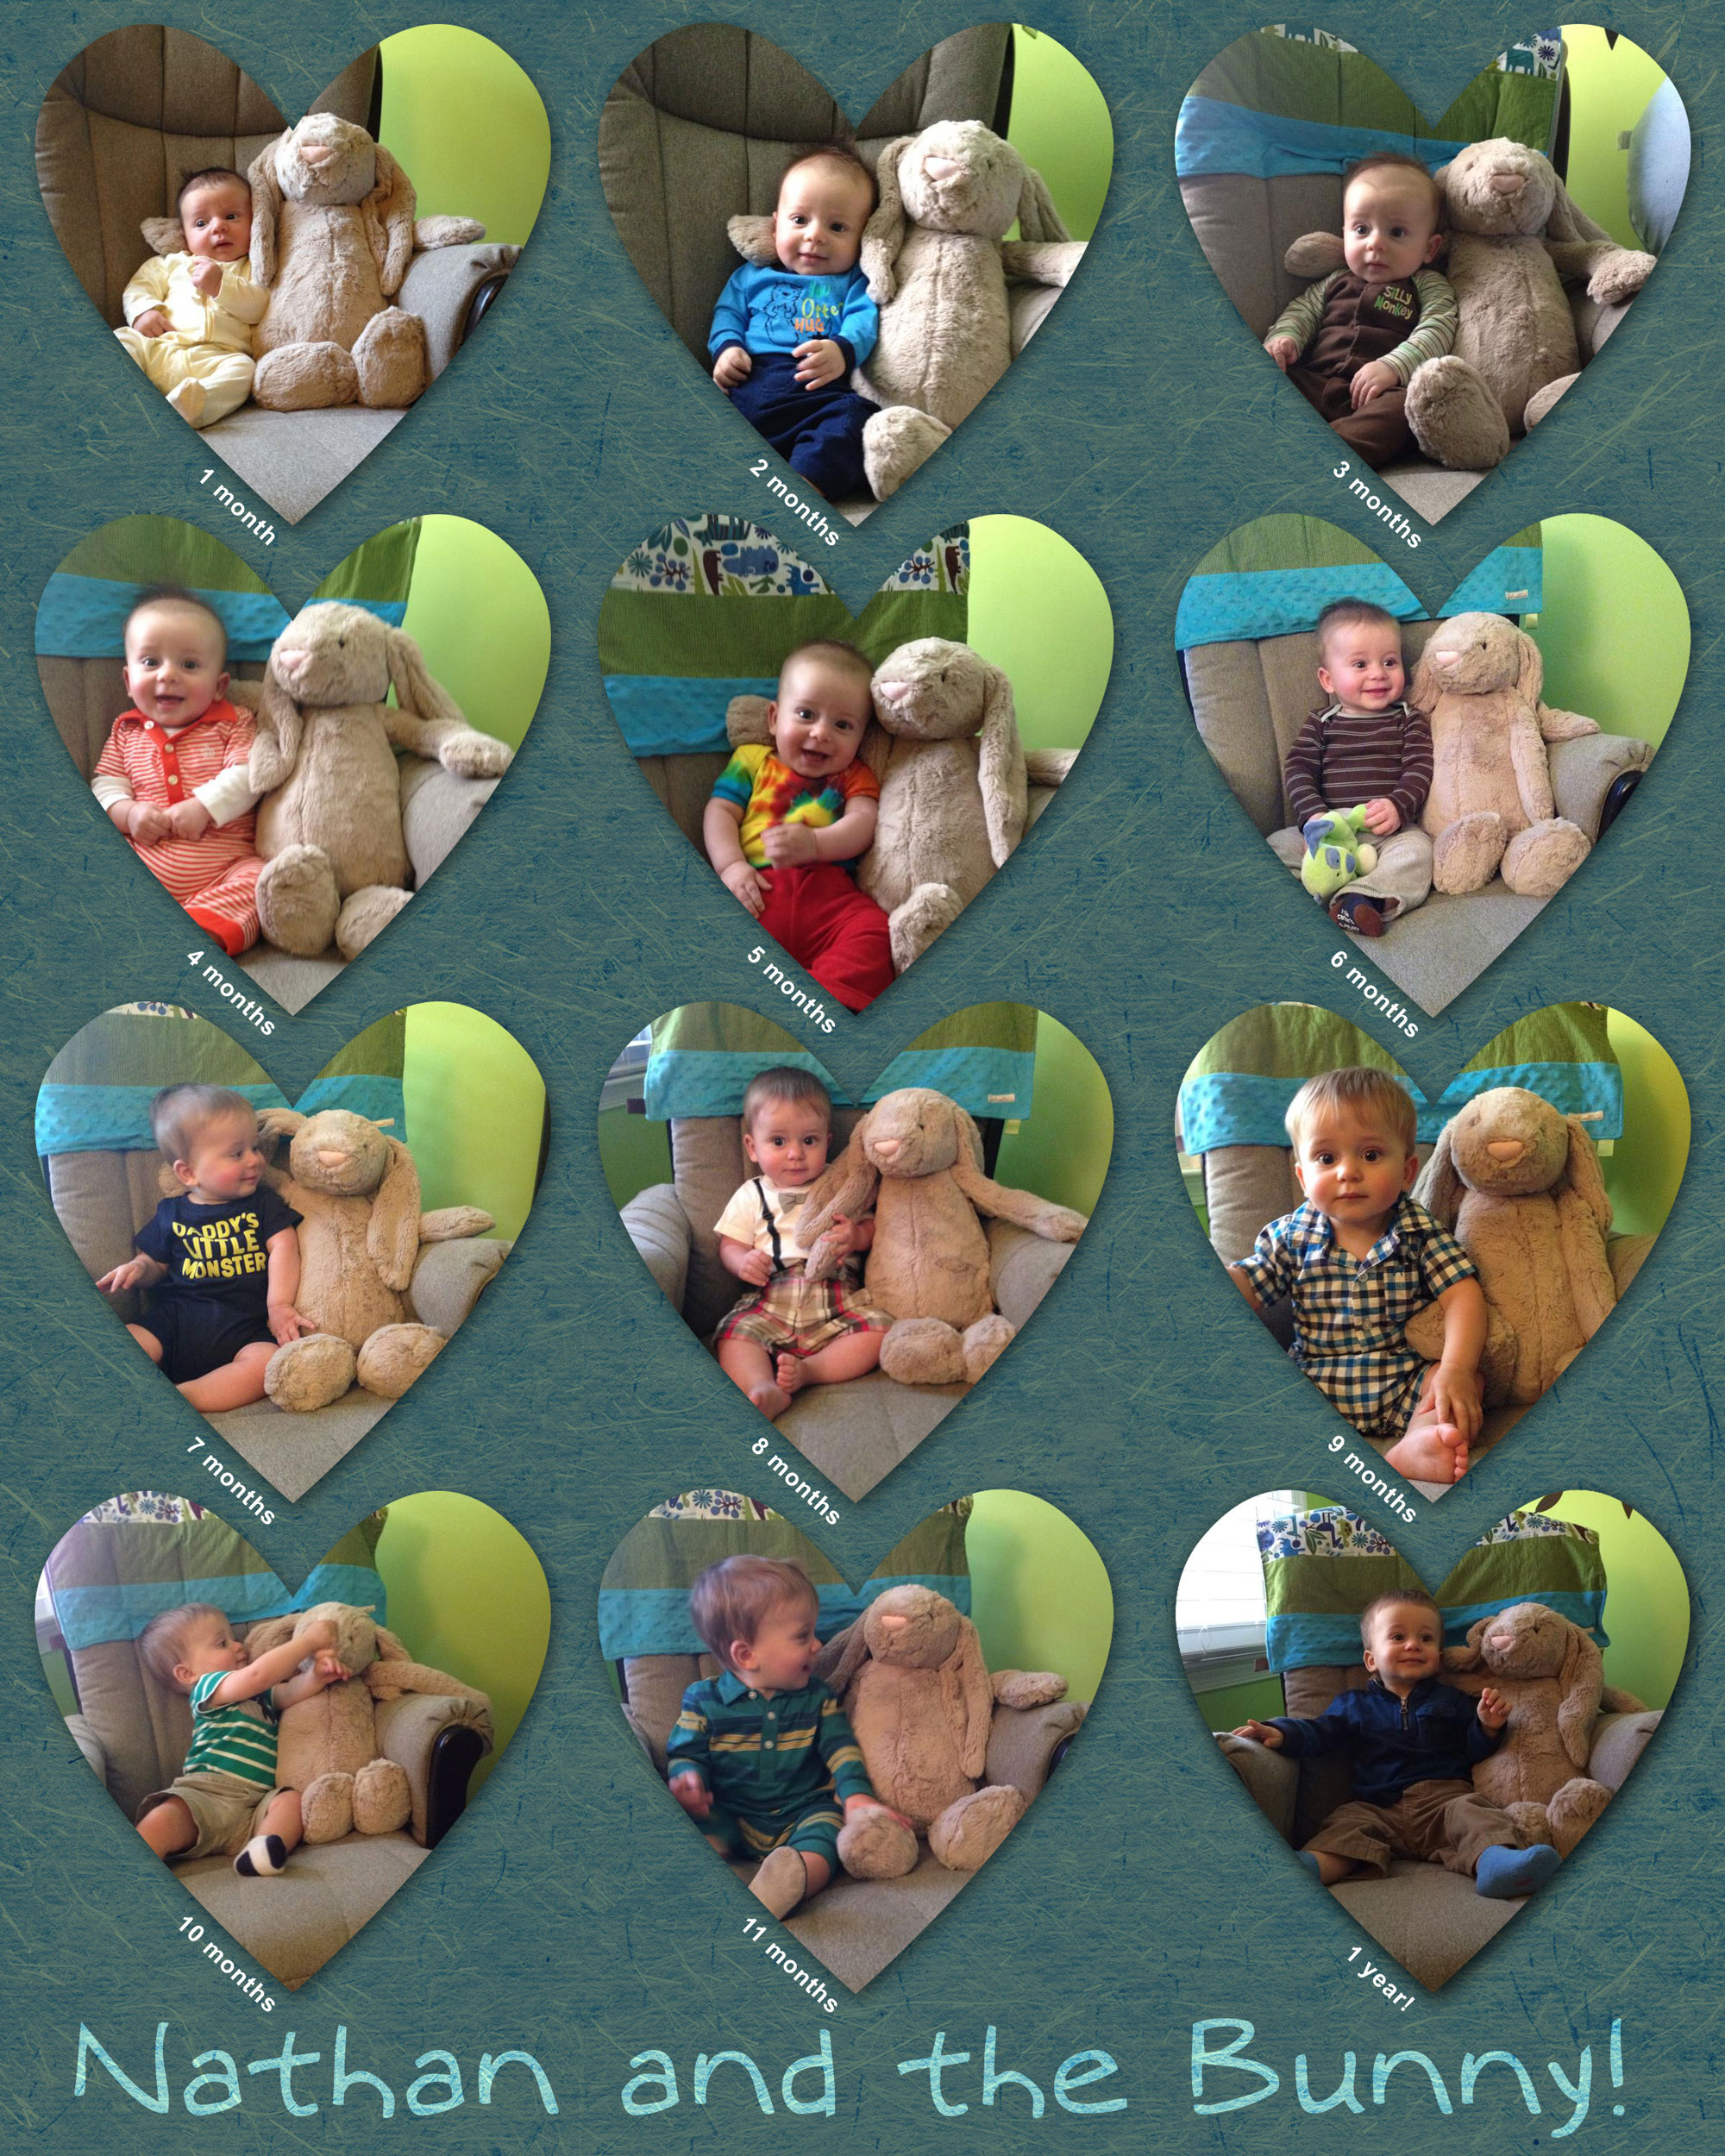 Baby's first year collage